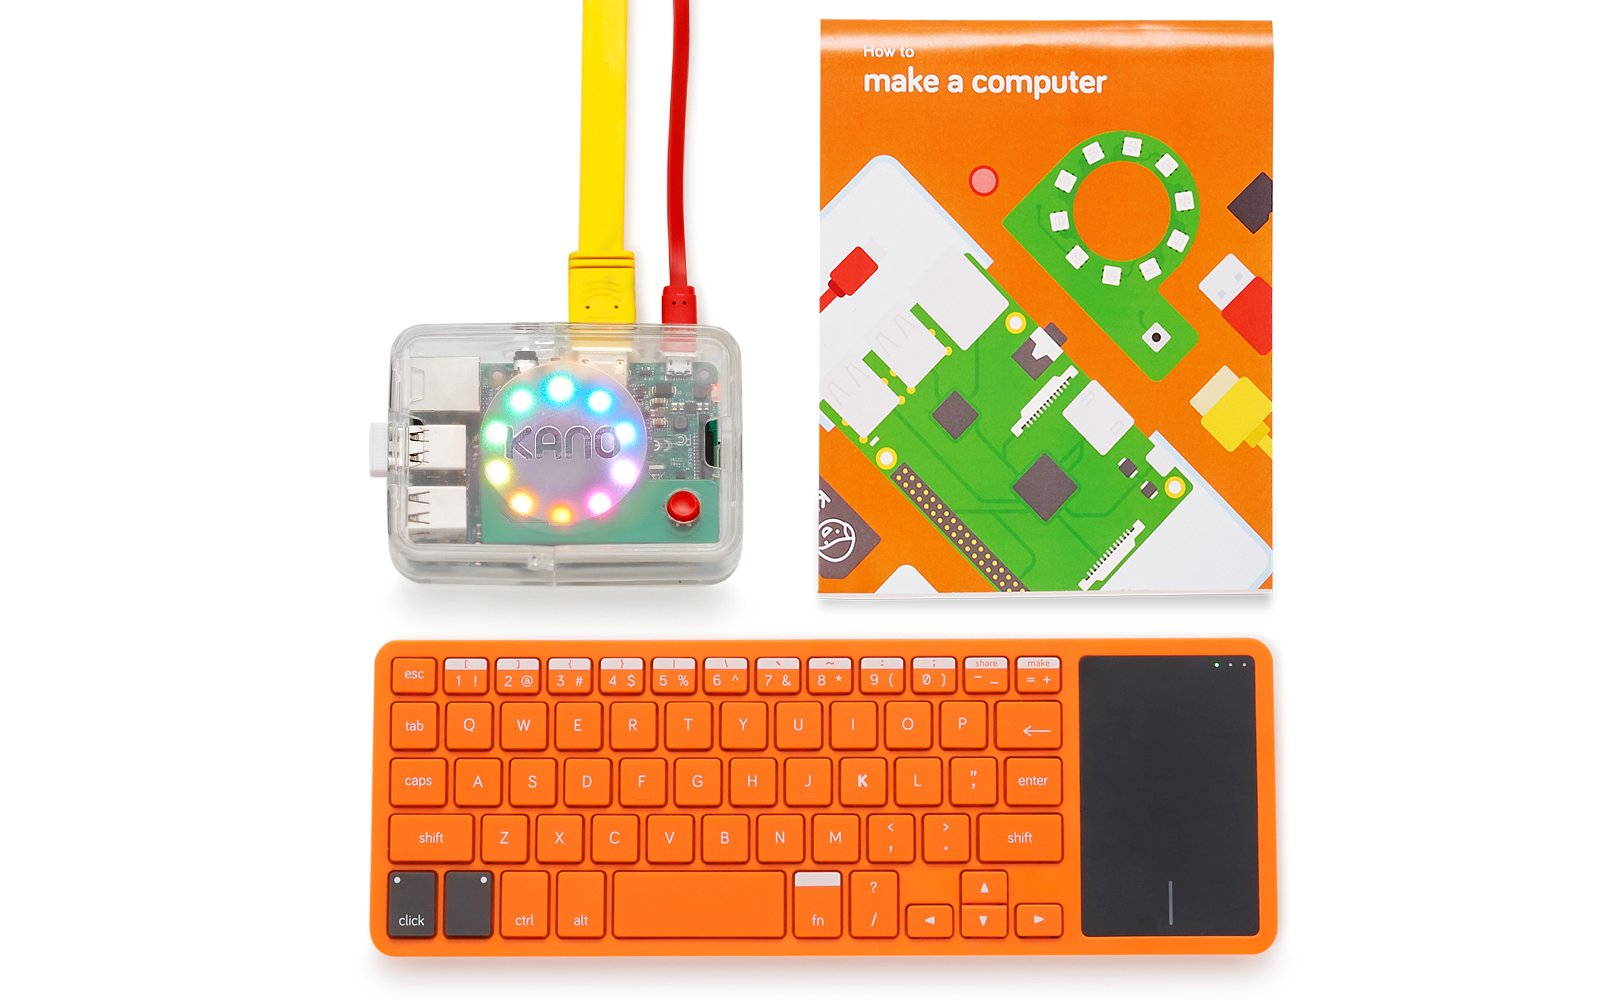 'Kano Computer Kit 2017 – Make a computer, learn to code by Kano (Image #1)